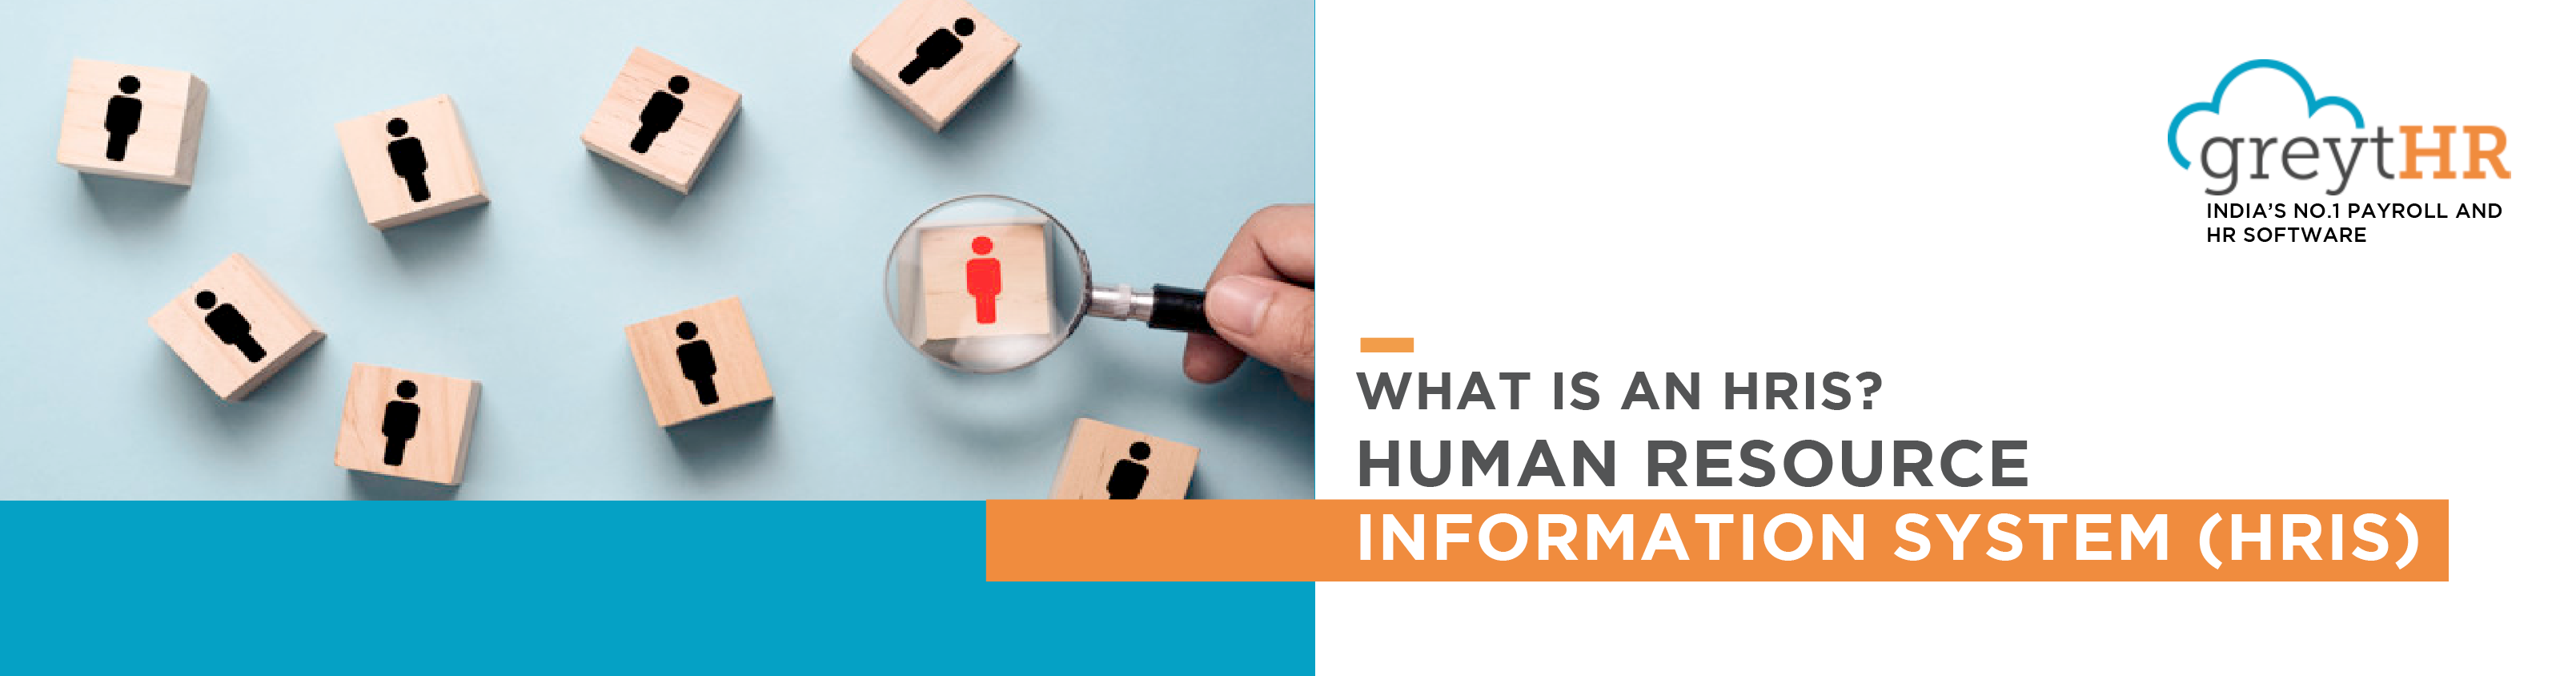 What is an HRIS? - Human Resource Information System (HRIS)